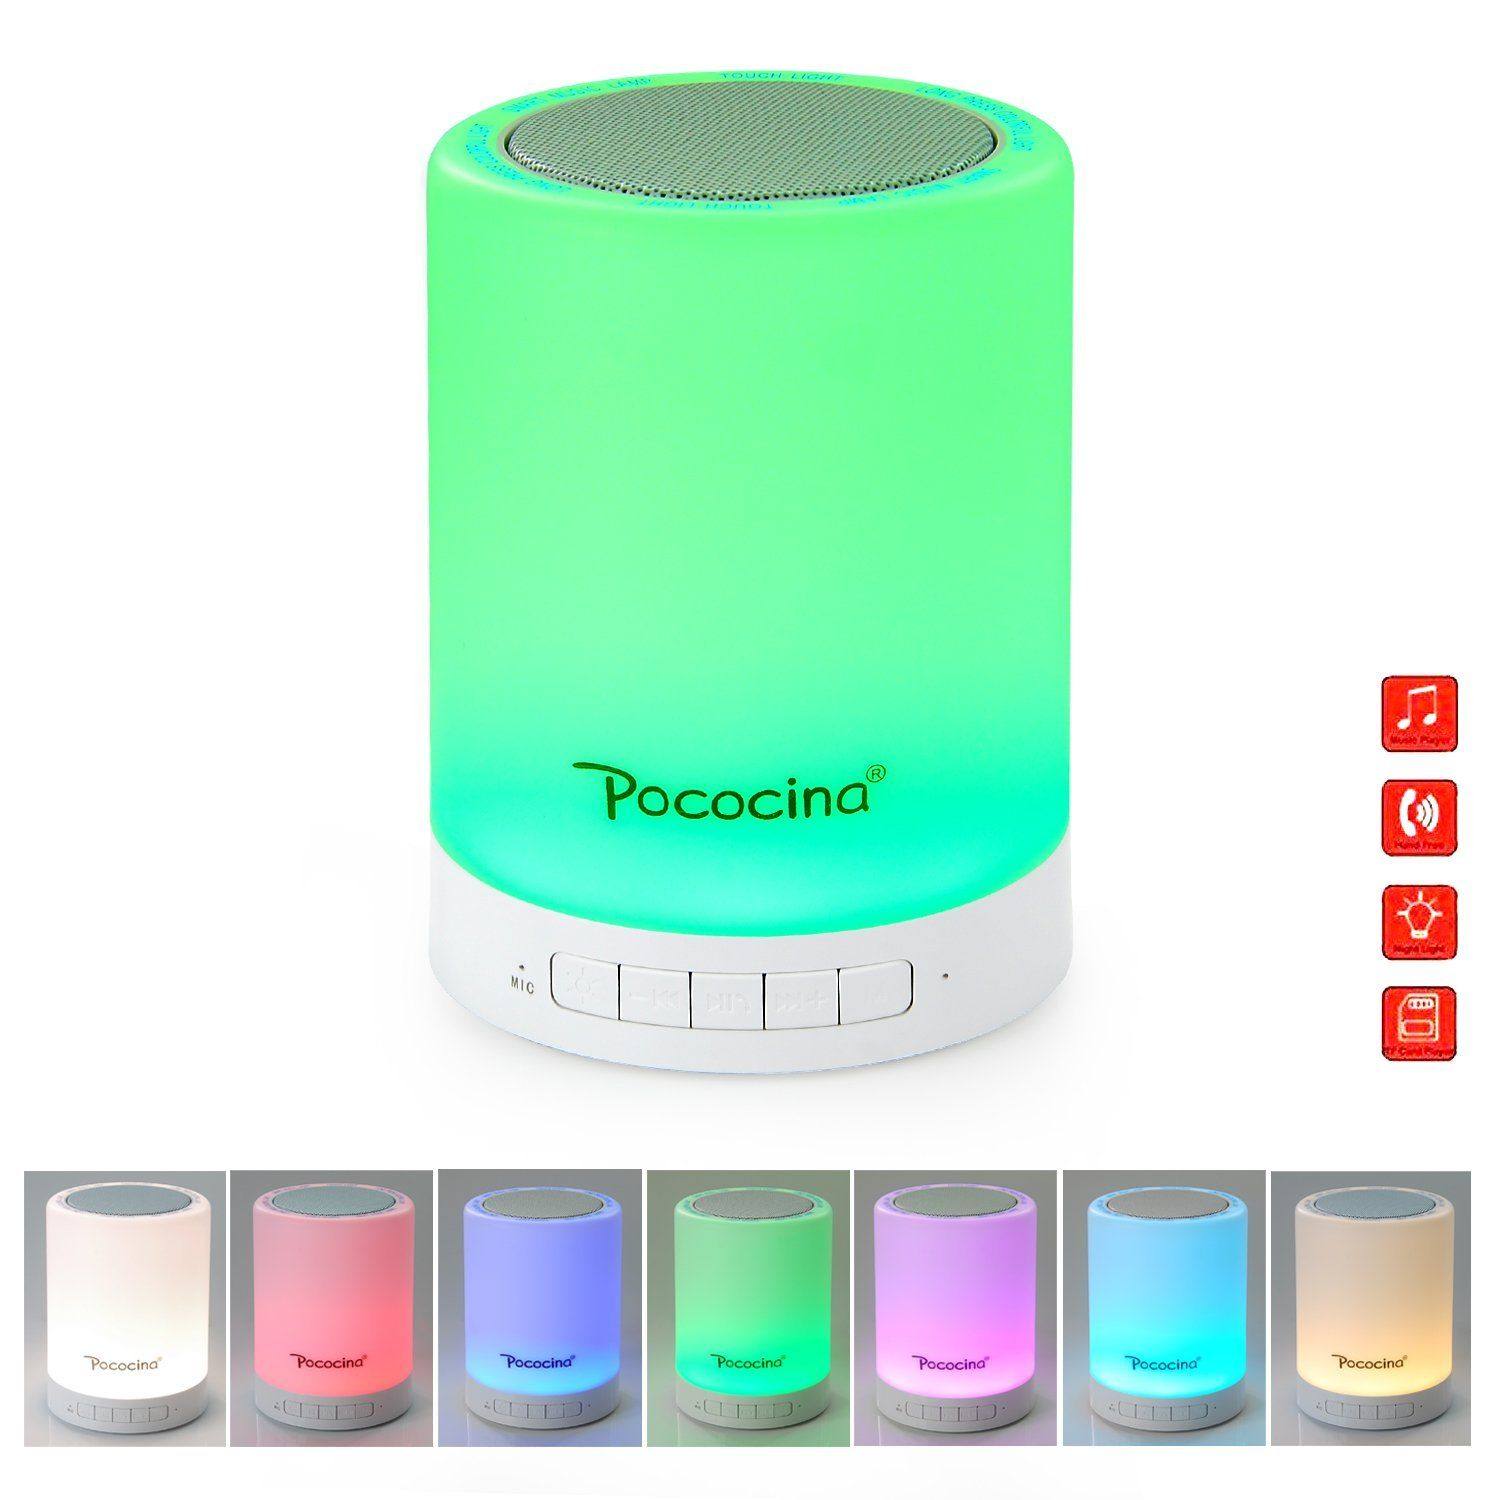 Pococina smart touch sensor bedside lamp and dimmable warm white pococina smart touch sensor bedside lamp and dimmable warm white led children table lamp with color geotapseo Images